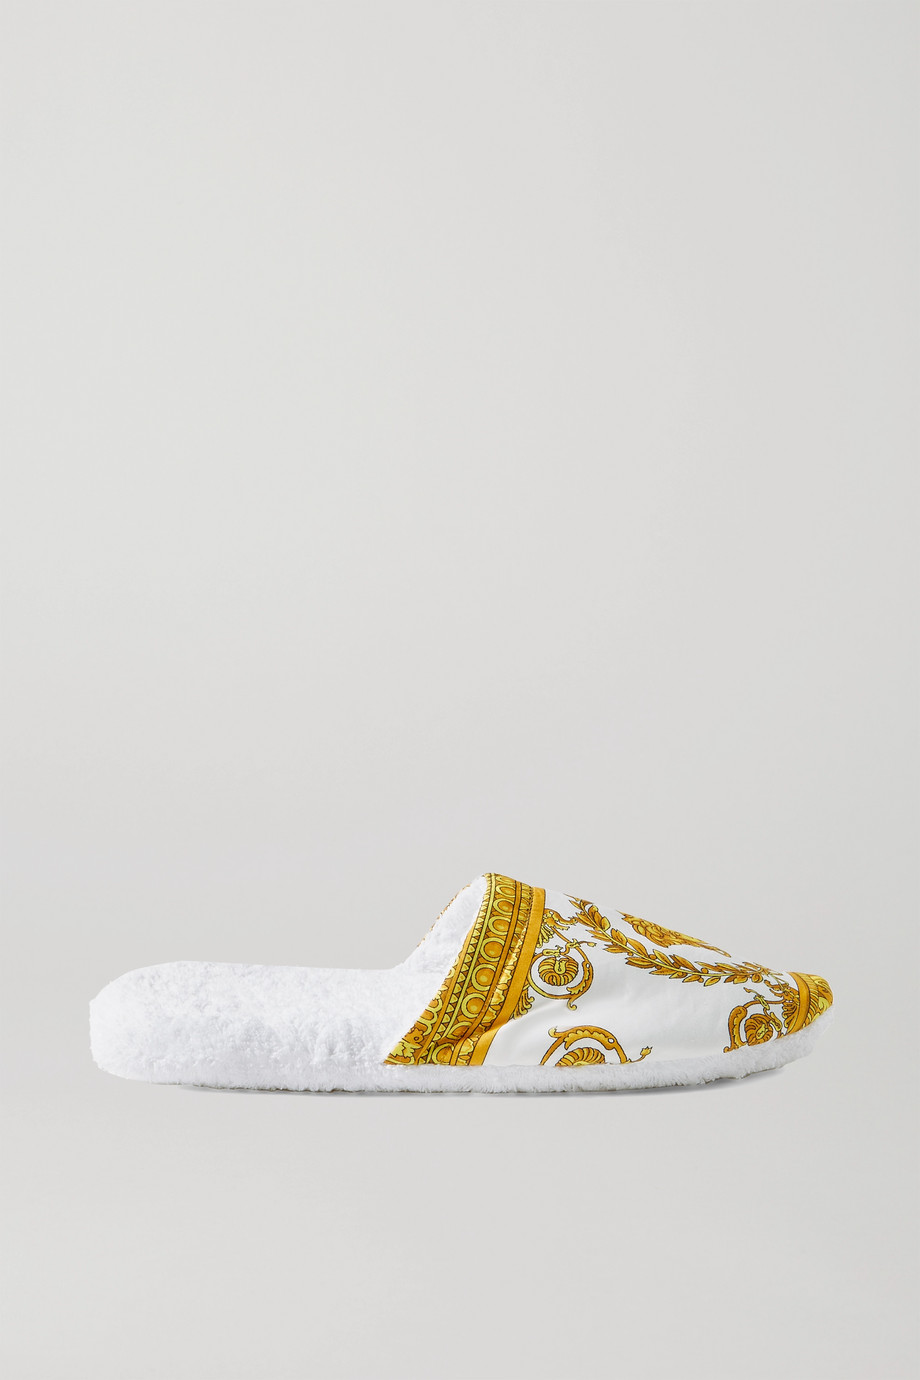 Versace Printed cotton slippers